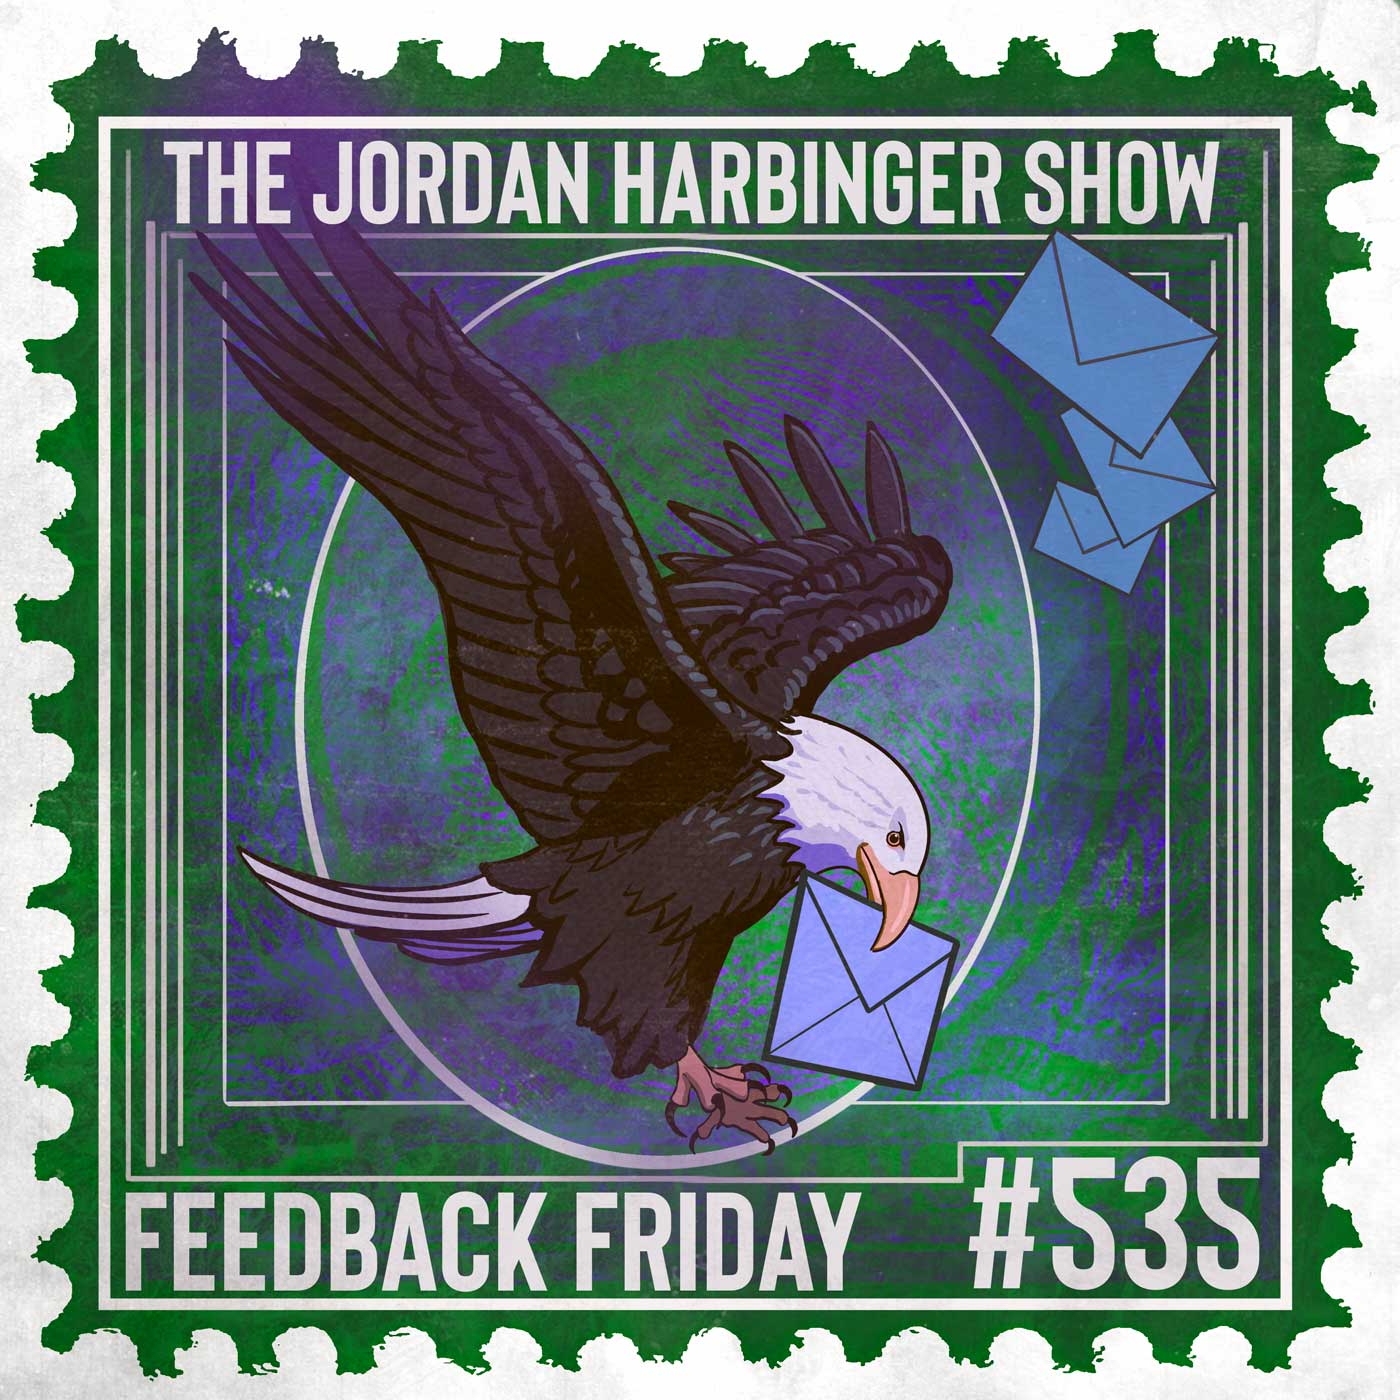 535: Should Siblings Unite to Confront Abusive Parents? | Feedback Friday